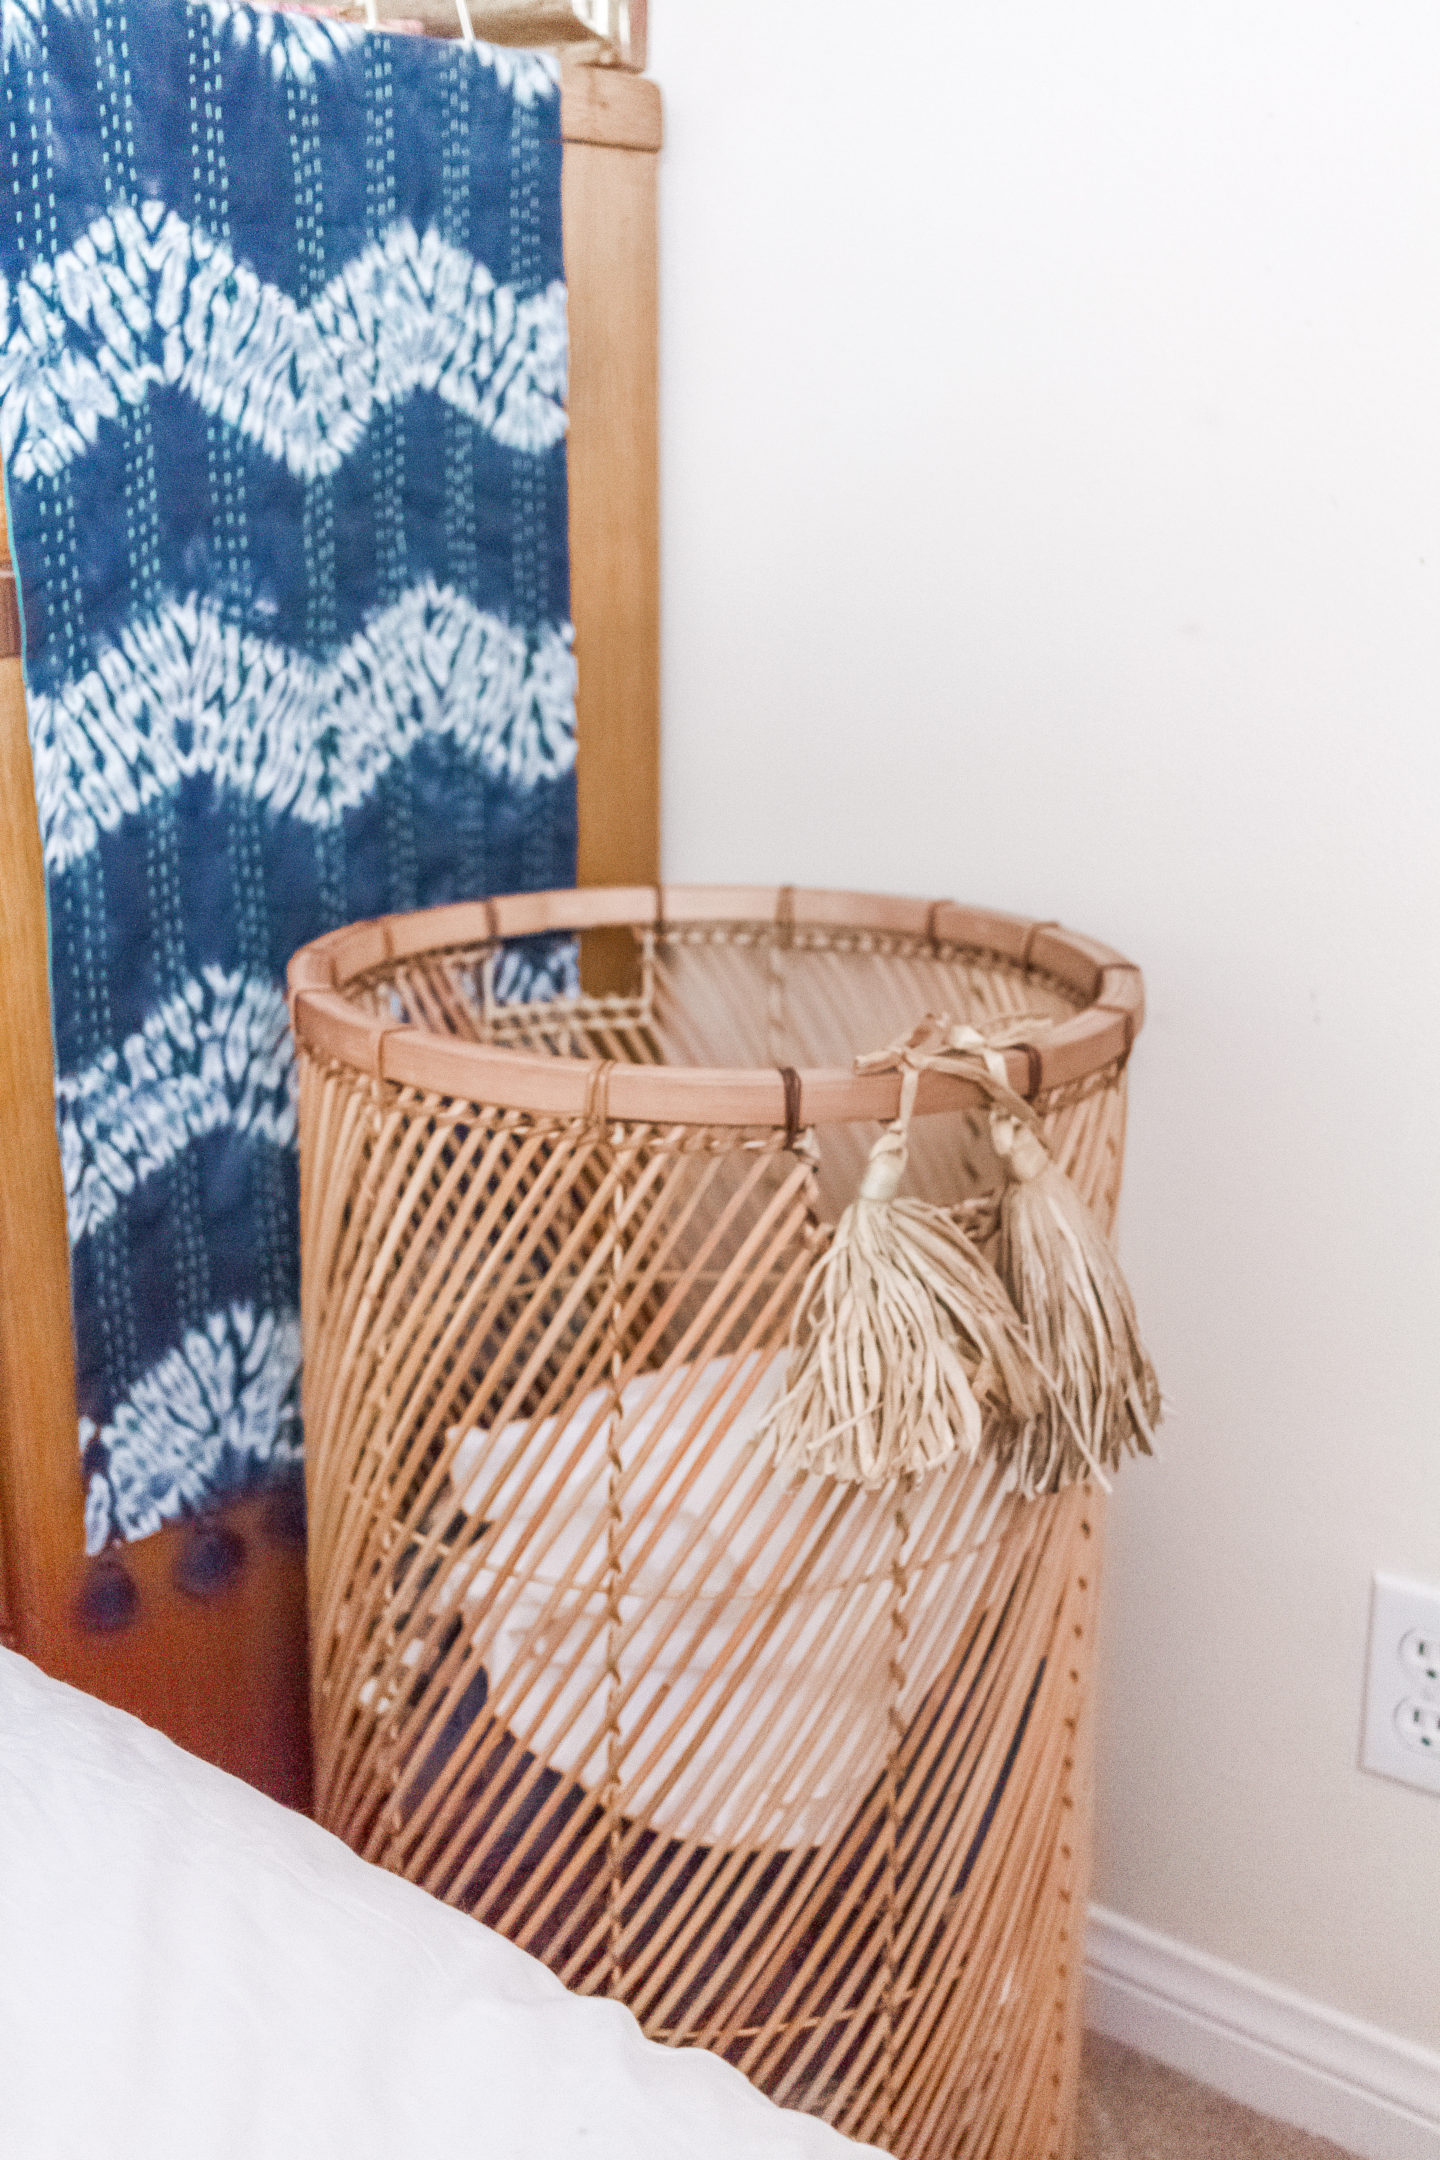 rattan hamper, bright boho chic bedroom #mypbteen #sponsored